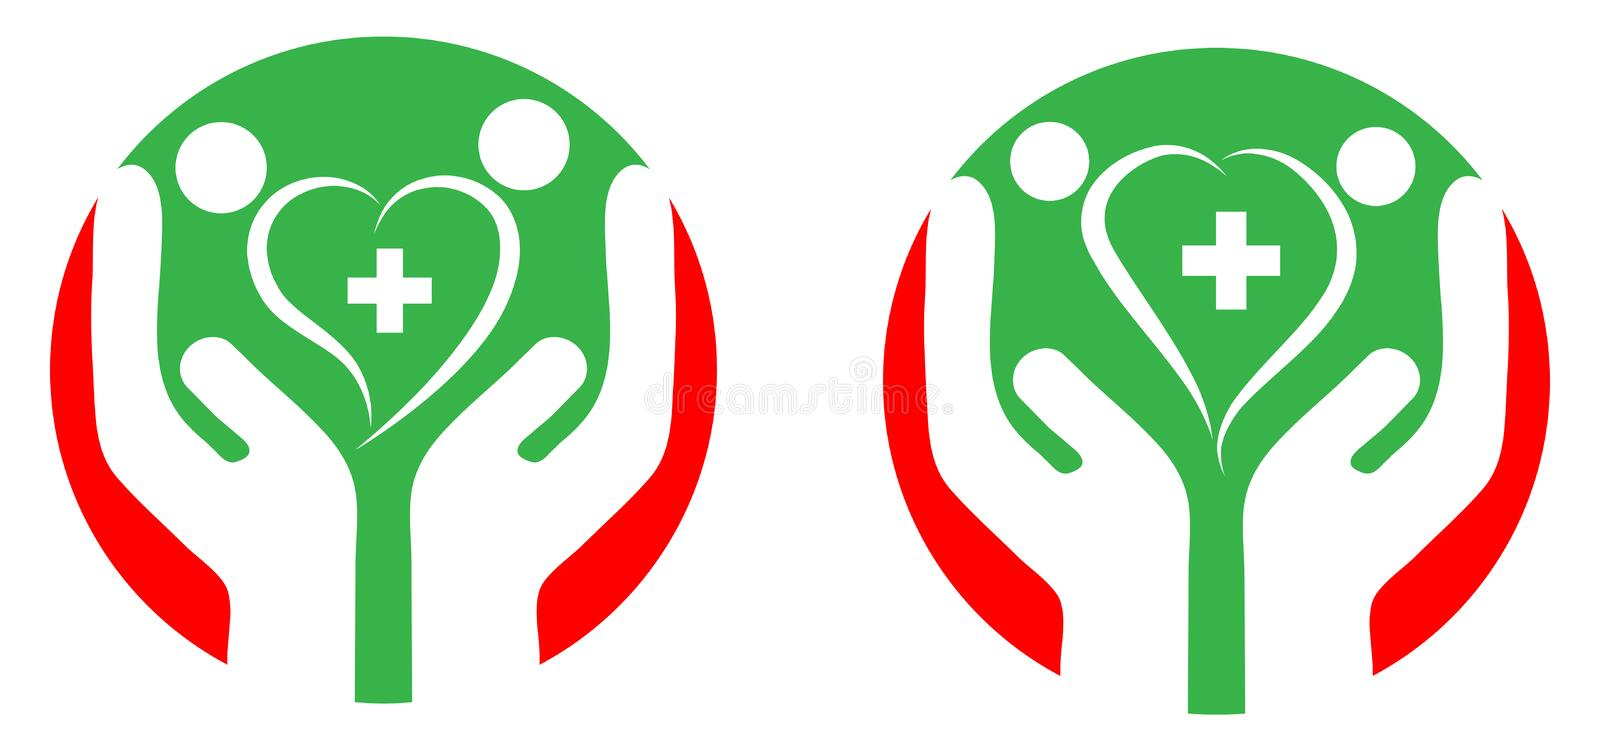 Heart care. Illustration of heart care logo with white background stock illustration